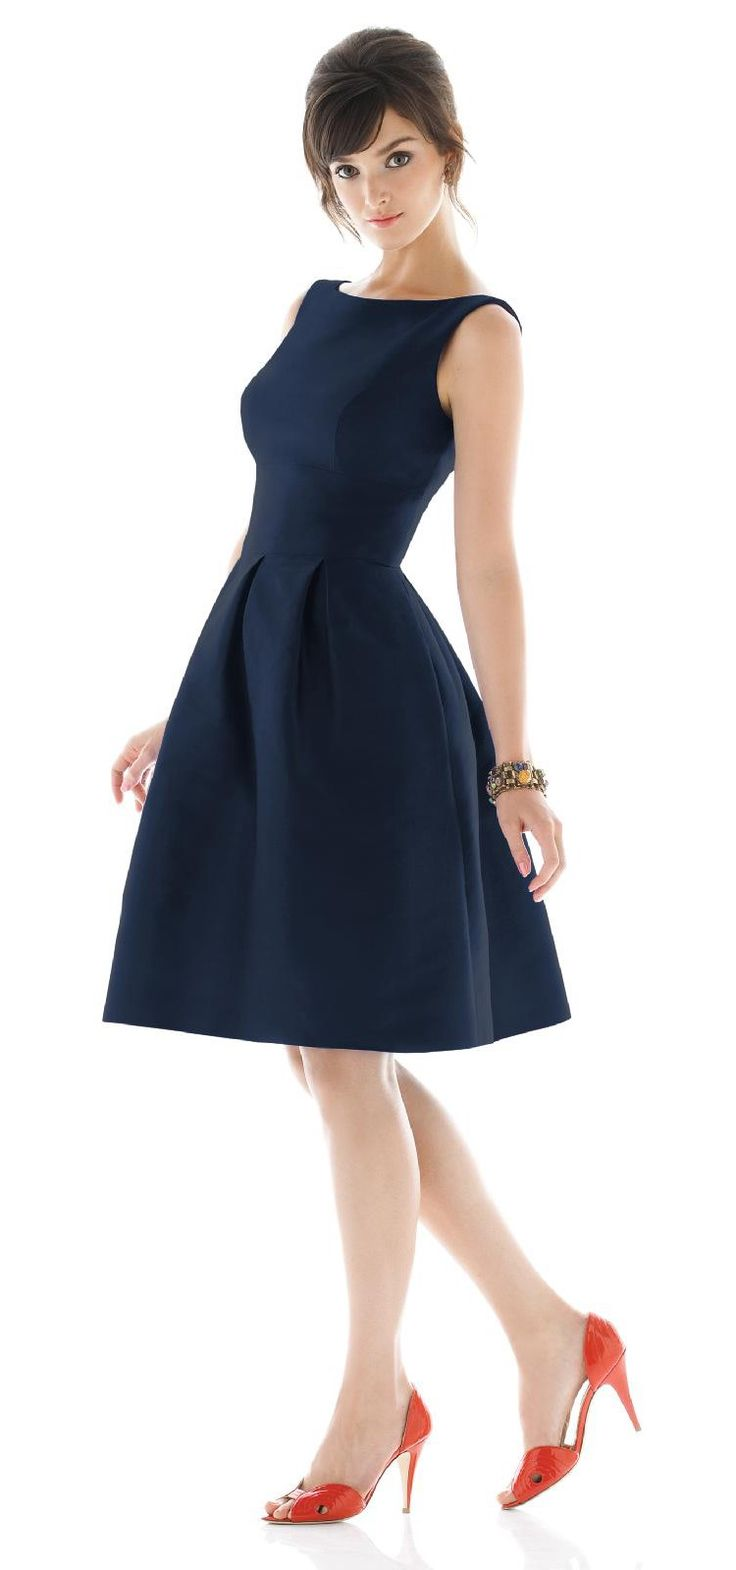 Alfred Sung bridesmaid dress in Navy! The perfect dress for your bridesmaids. Vintage inspired too, so cute!